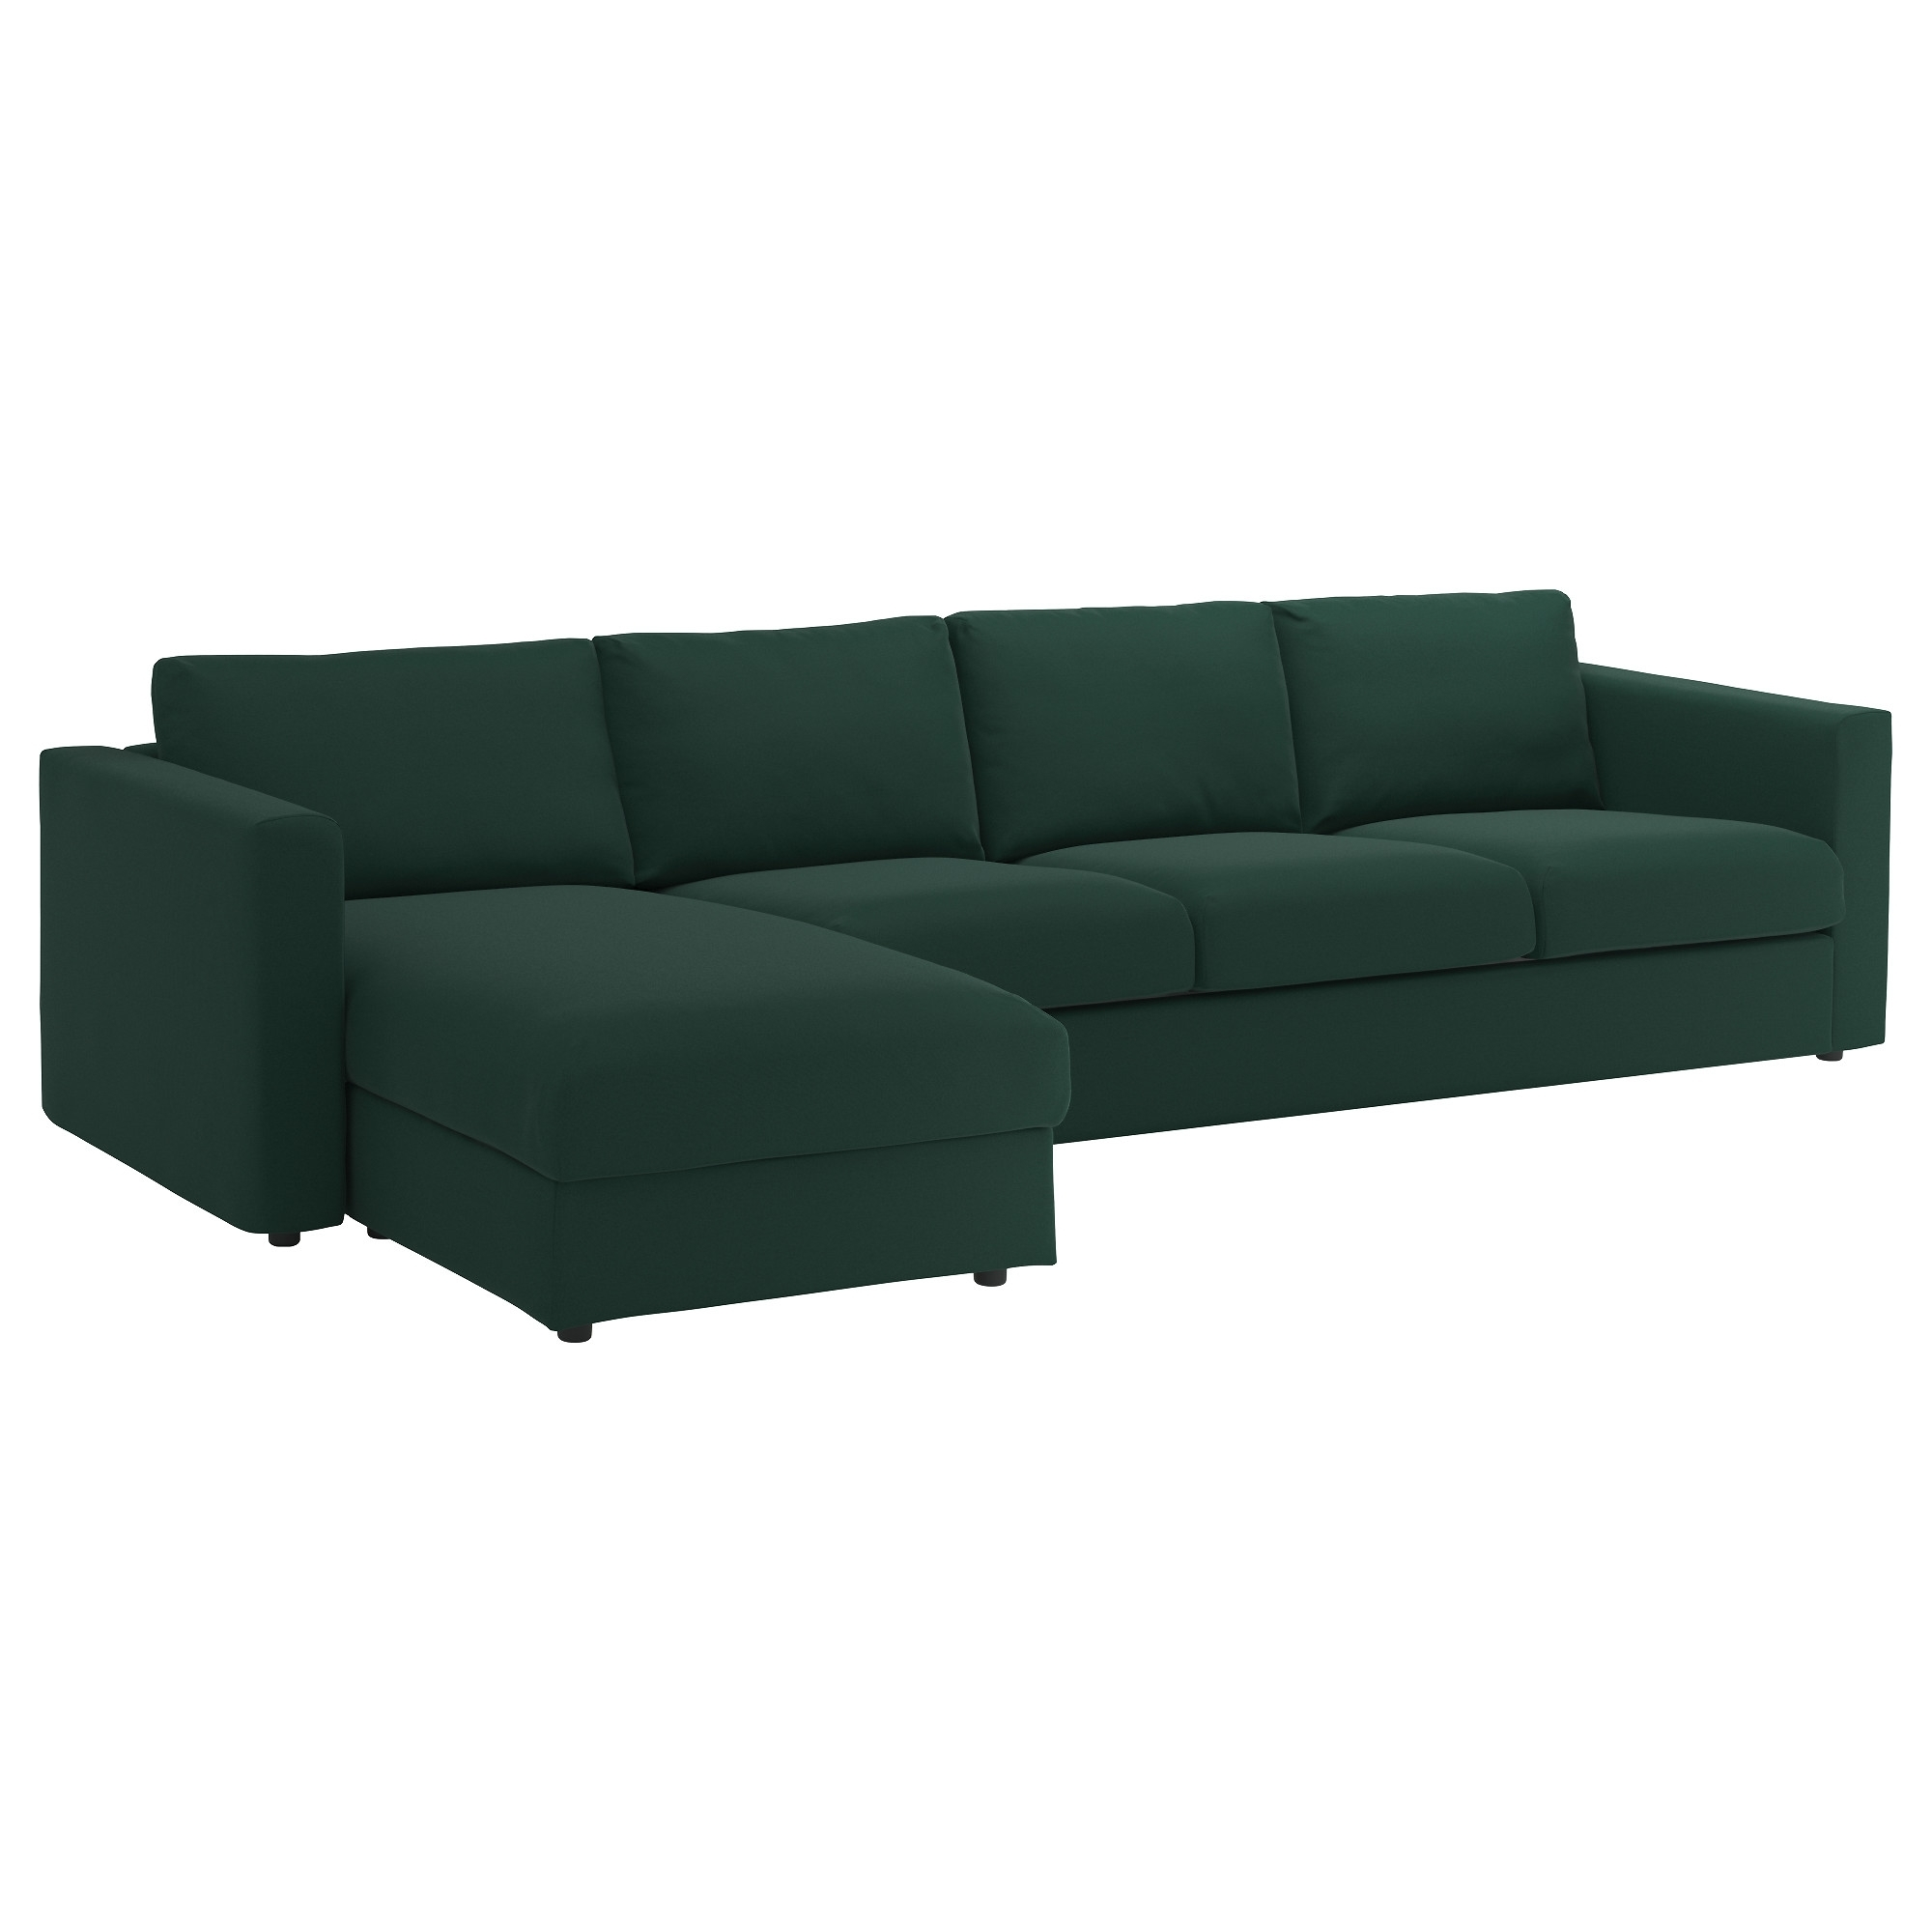 Jedd Fabric Reclining Sectional Sofa Reviews Sofas Contemporary With Most Recent Jedd Fabric Reclining Sectional Sofas (Gallery 19 of 20)